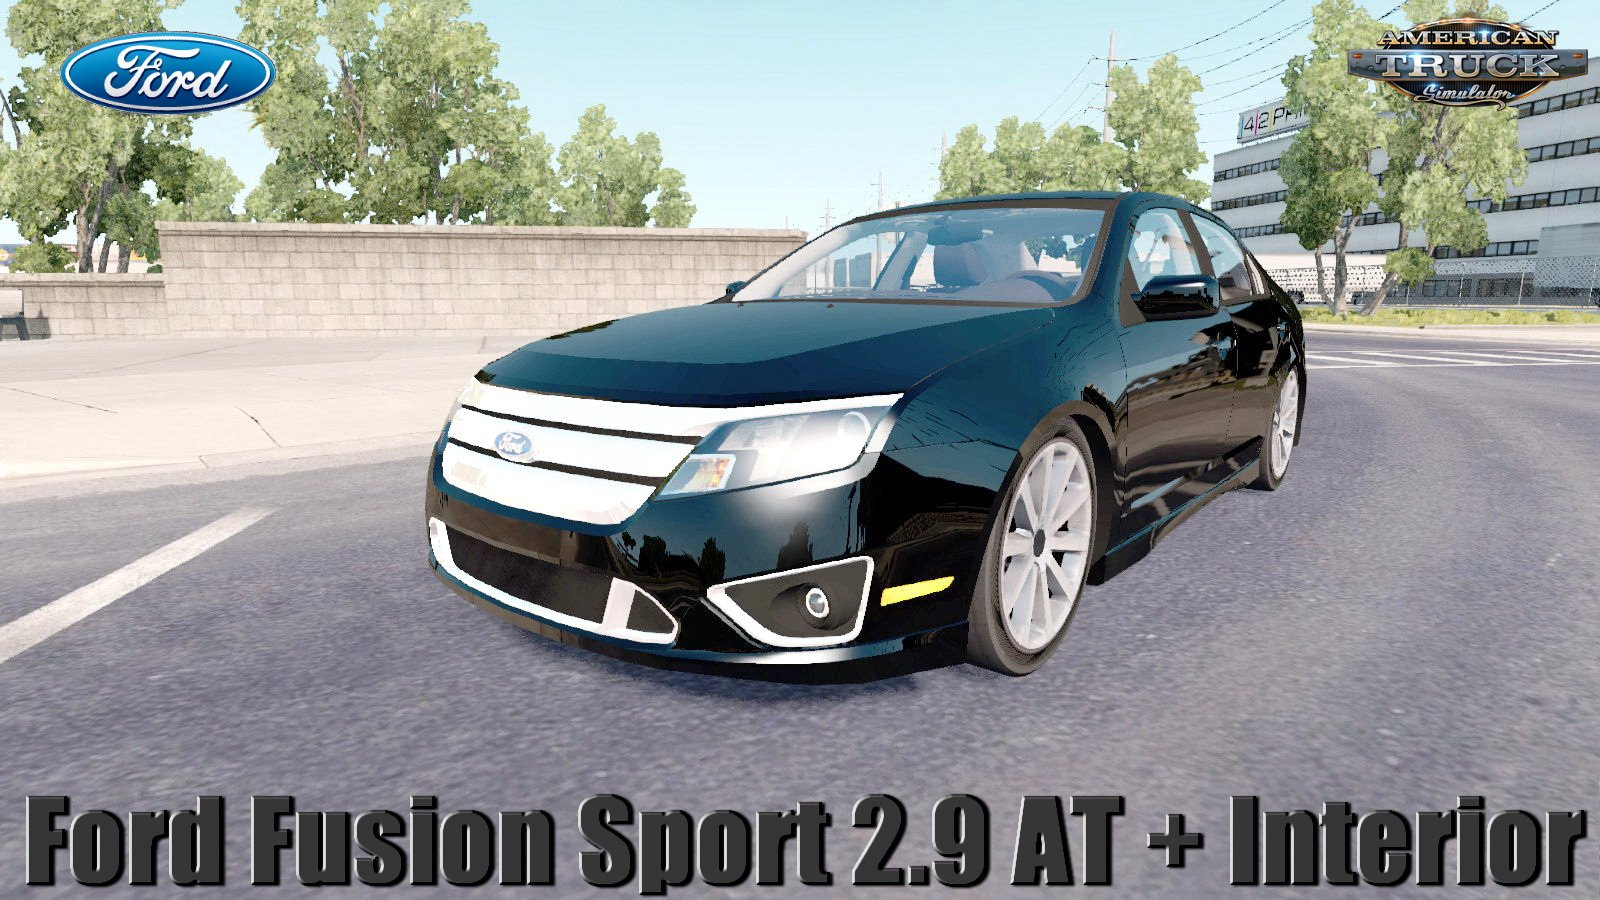 Ford Fusion Sport 2010 2.9 AT + Interior v1.0 (1.31.x)